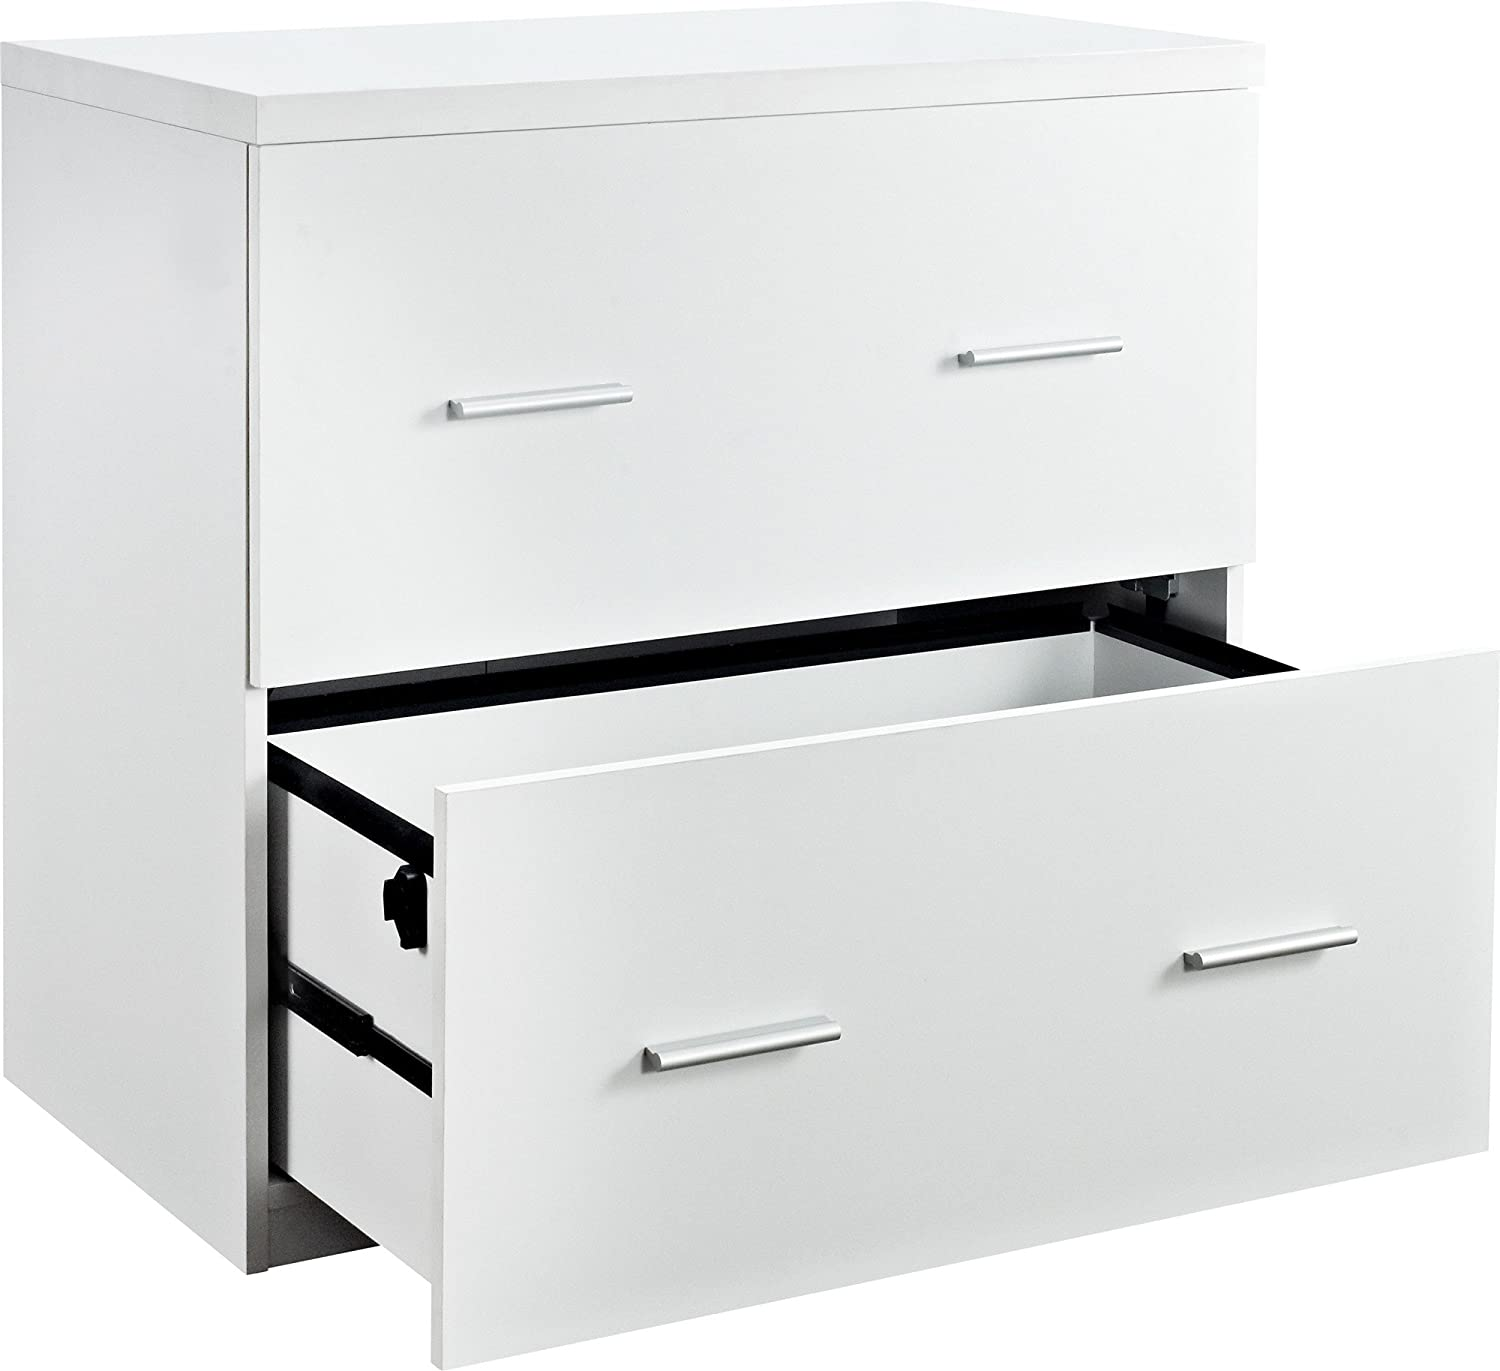 Merveilleux Amazon.com: Ameriwood Home Princeton Lateral File Cabinet, White: Kitchen U0026  Dining